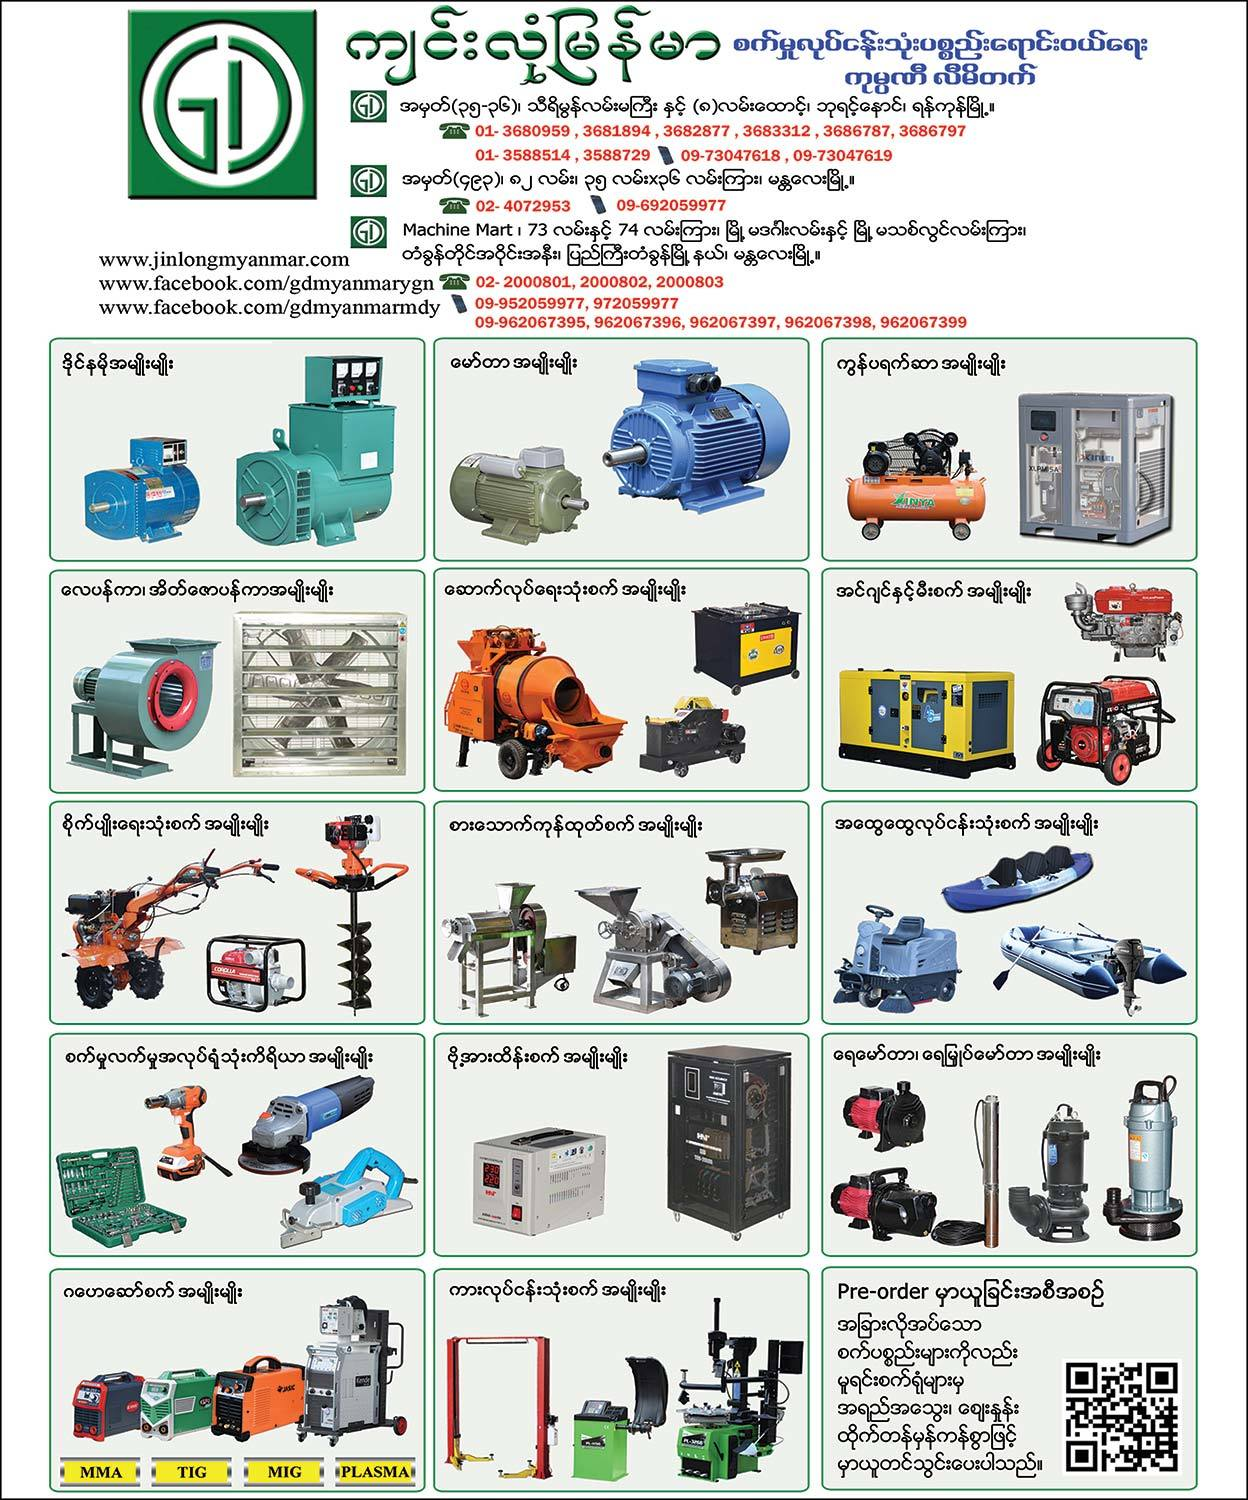 Kyin-Lone-Myanmar(Machinery-&-Spareparts-Dealers)_0501.jpg